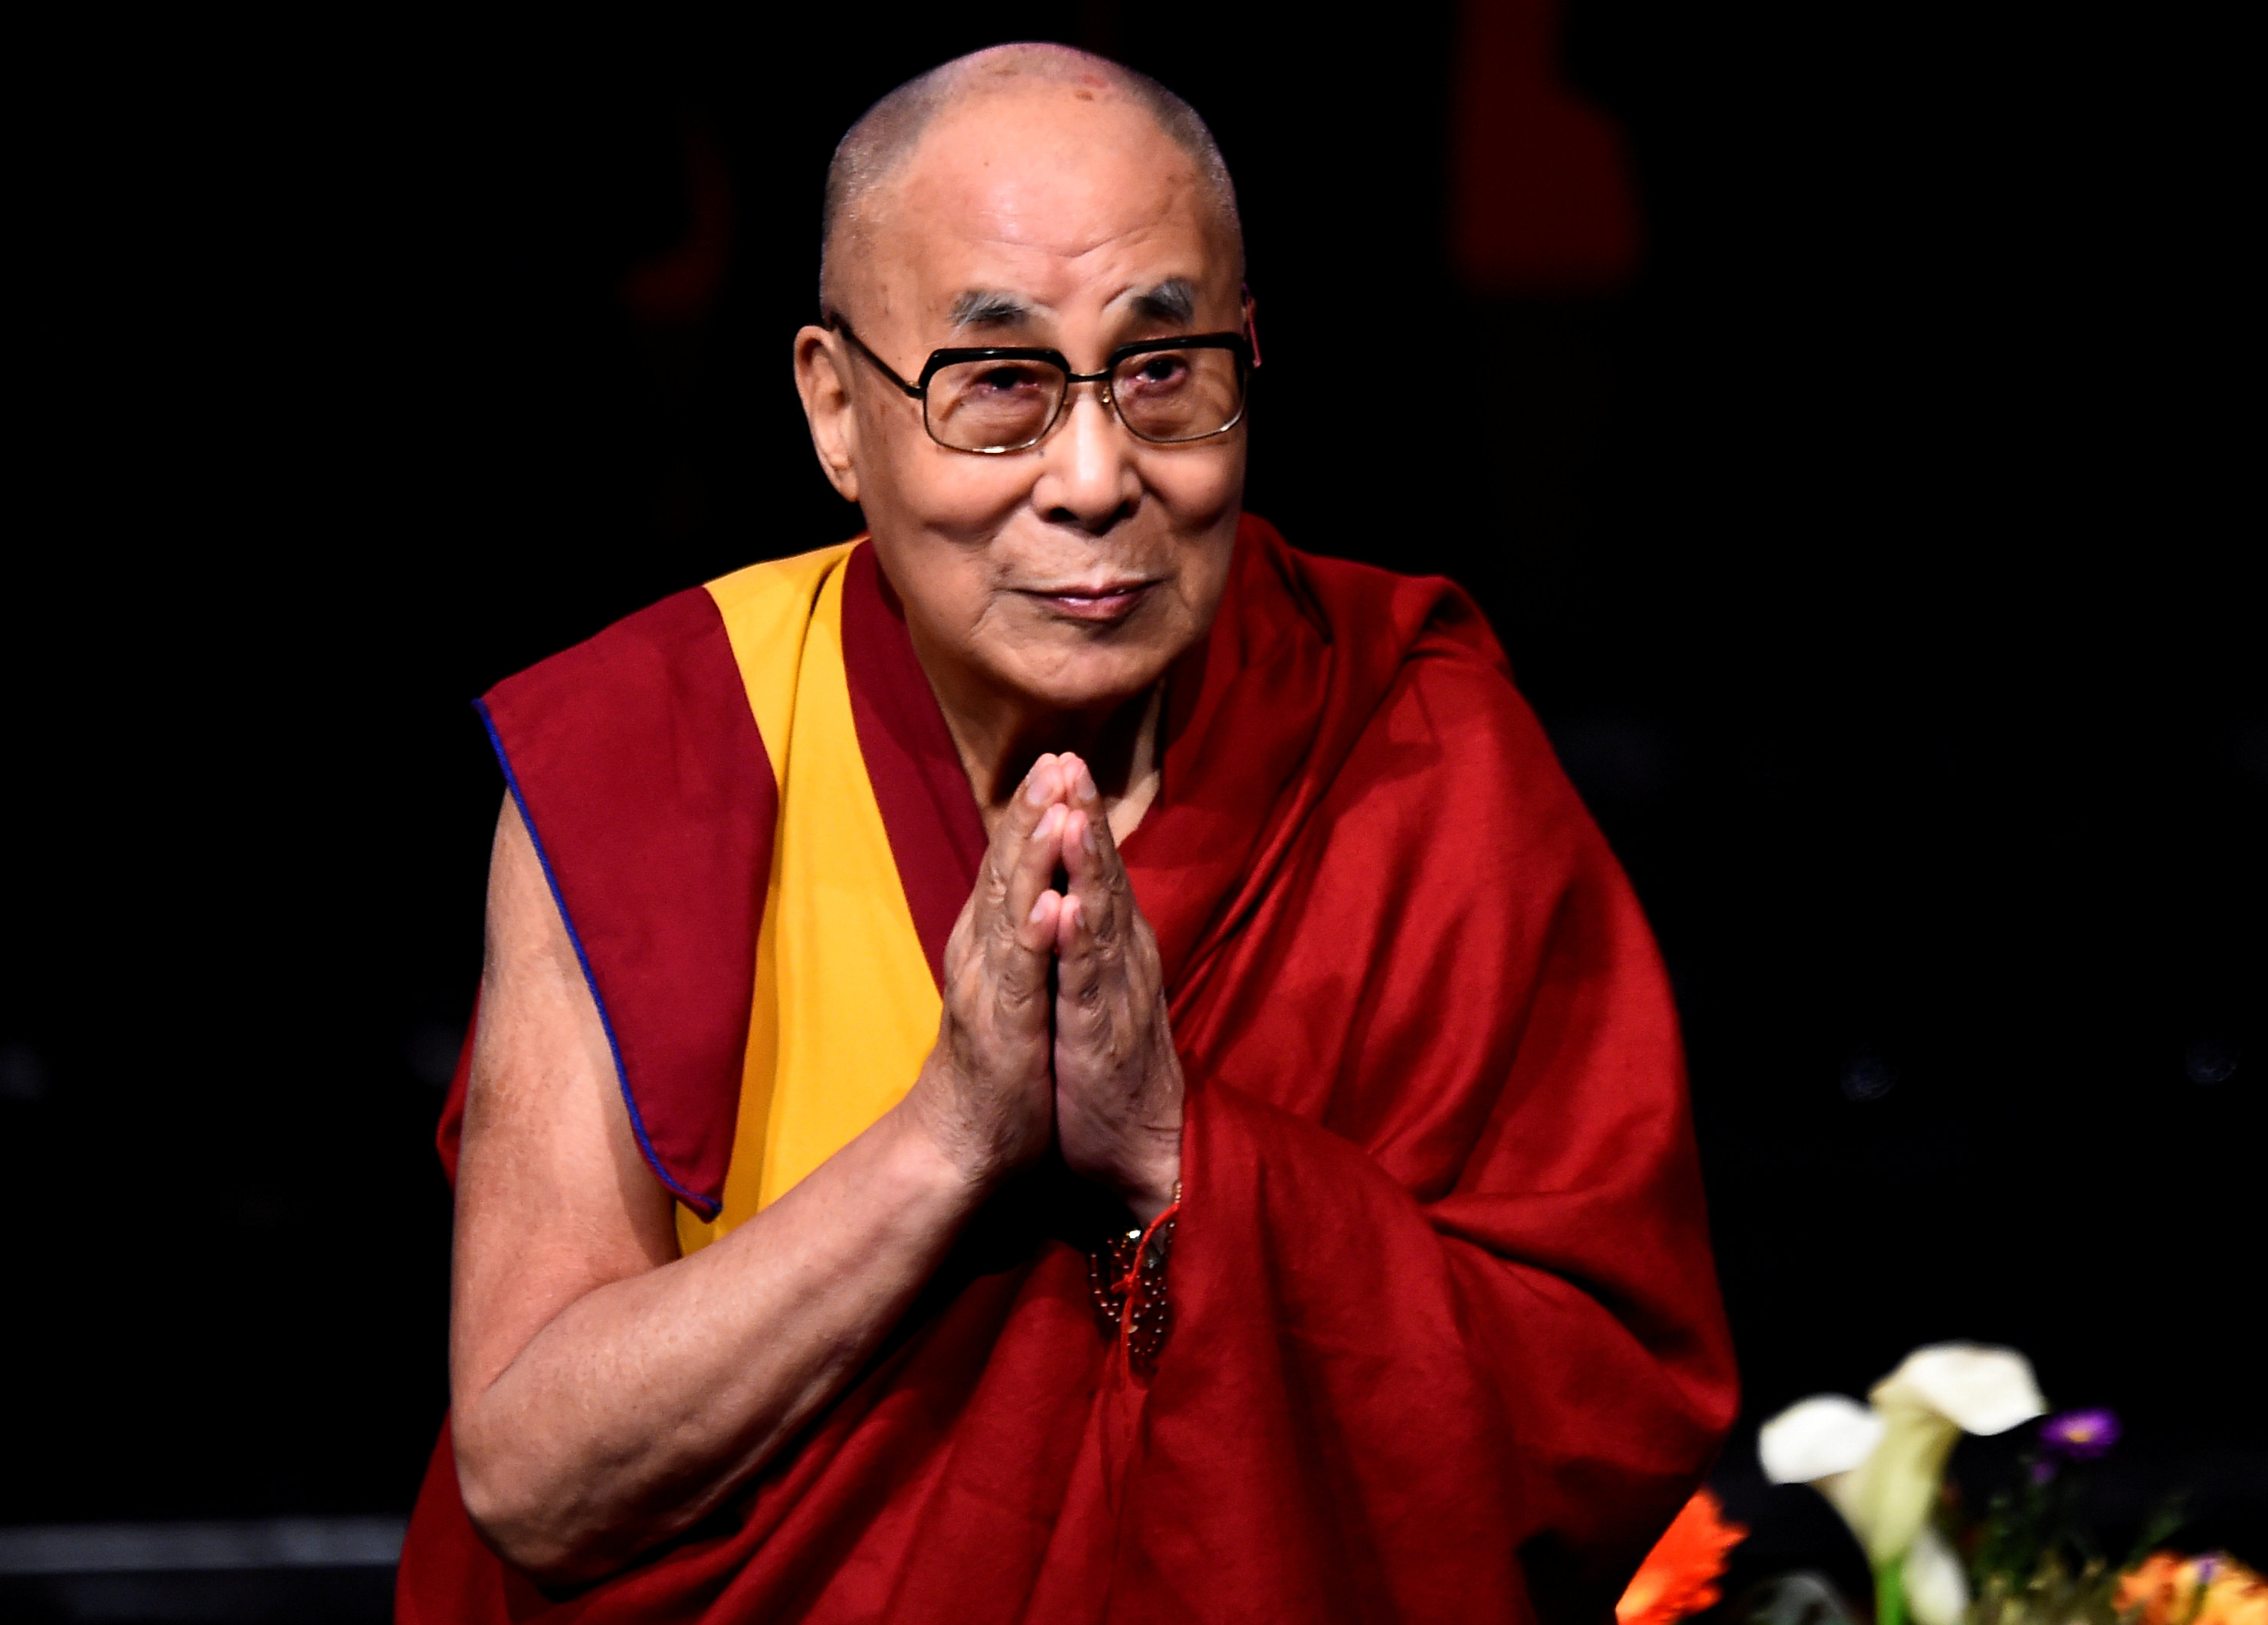 Dalai Lama Deeply Sorry For Comments On Women Life